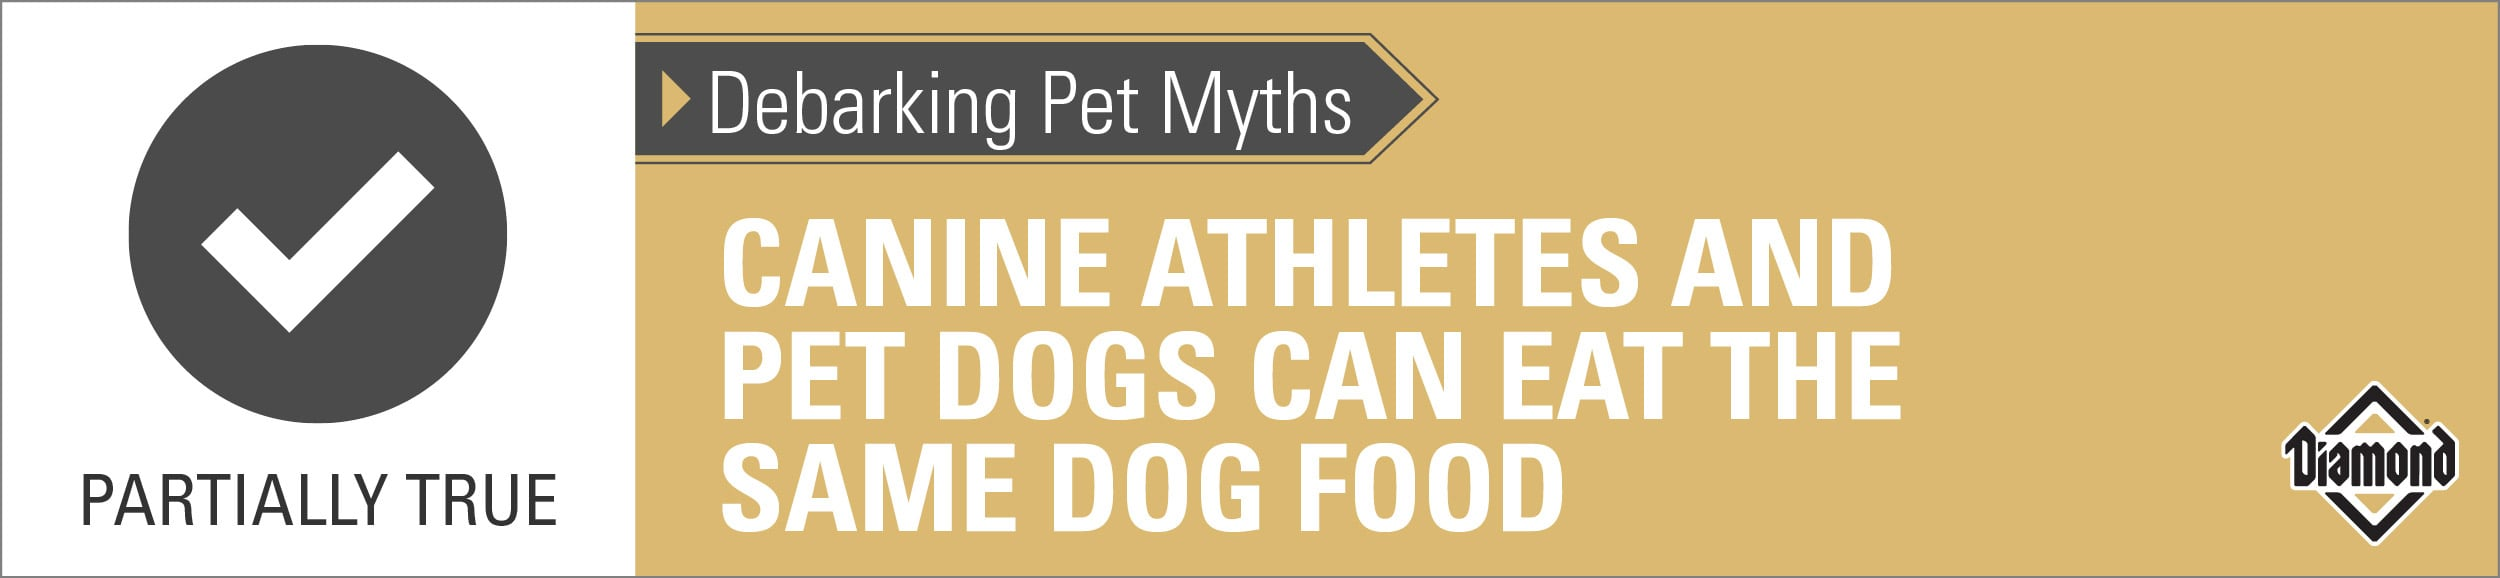 Partially True: Canine Athletes and Pet Dogs Can Eat the Same Dog Food Depending on Their Activity Level | Diamond Pet Foods